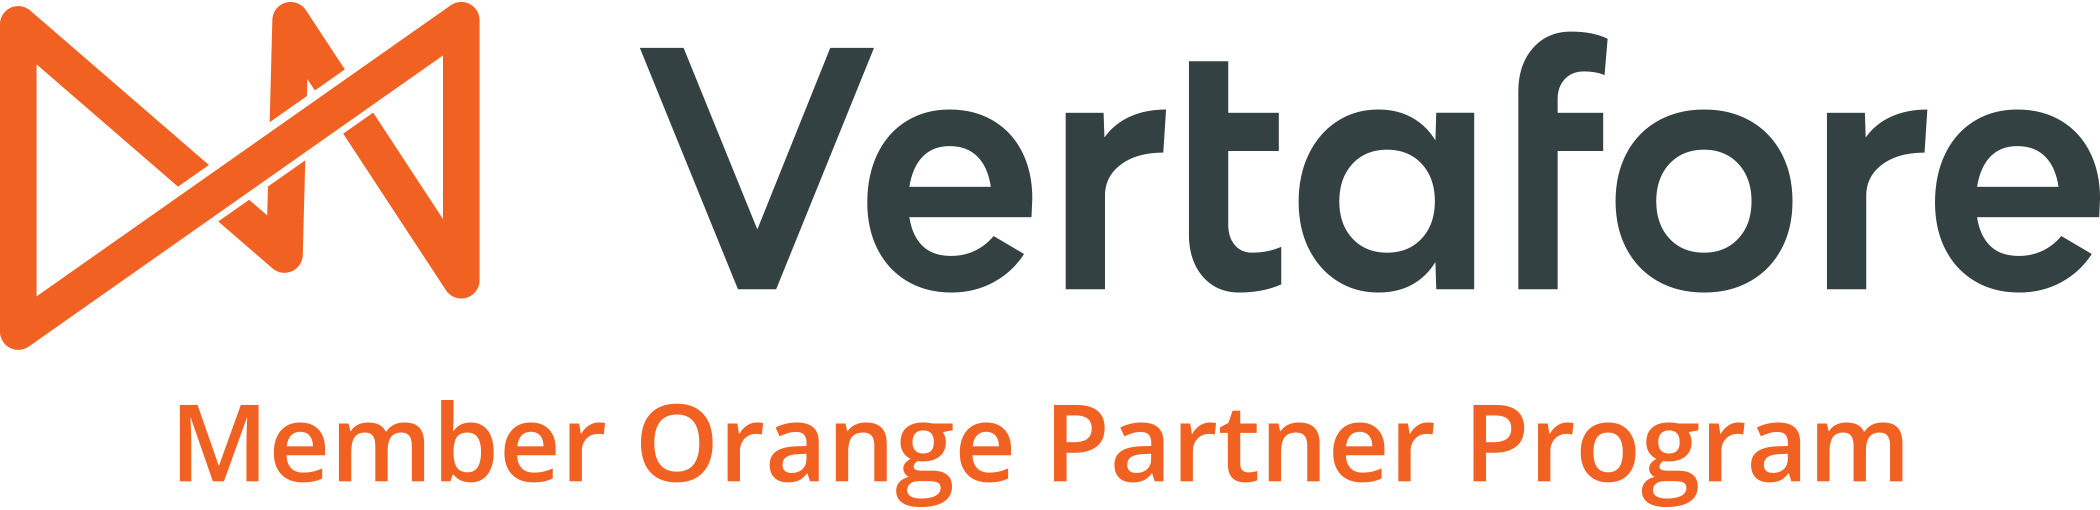 Vertafore Orange Partner